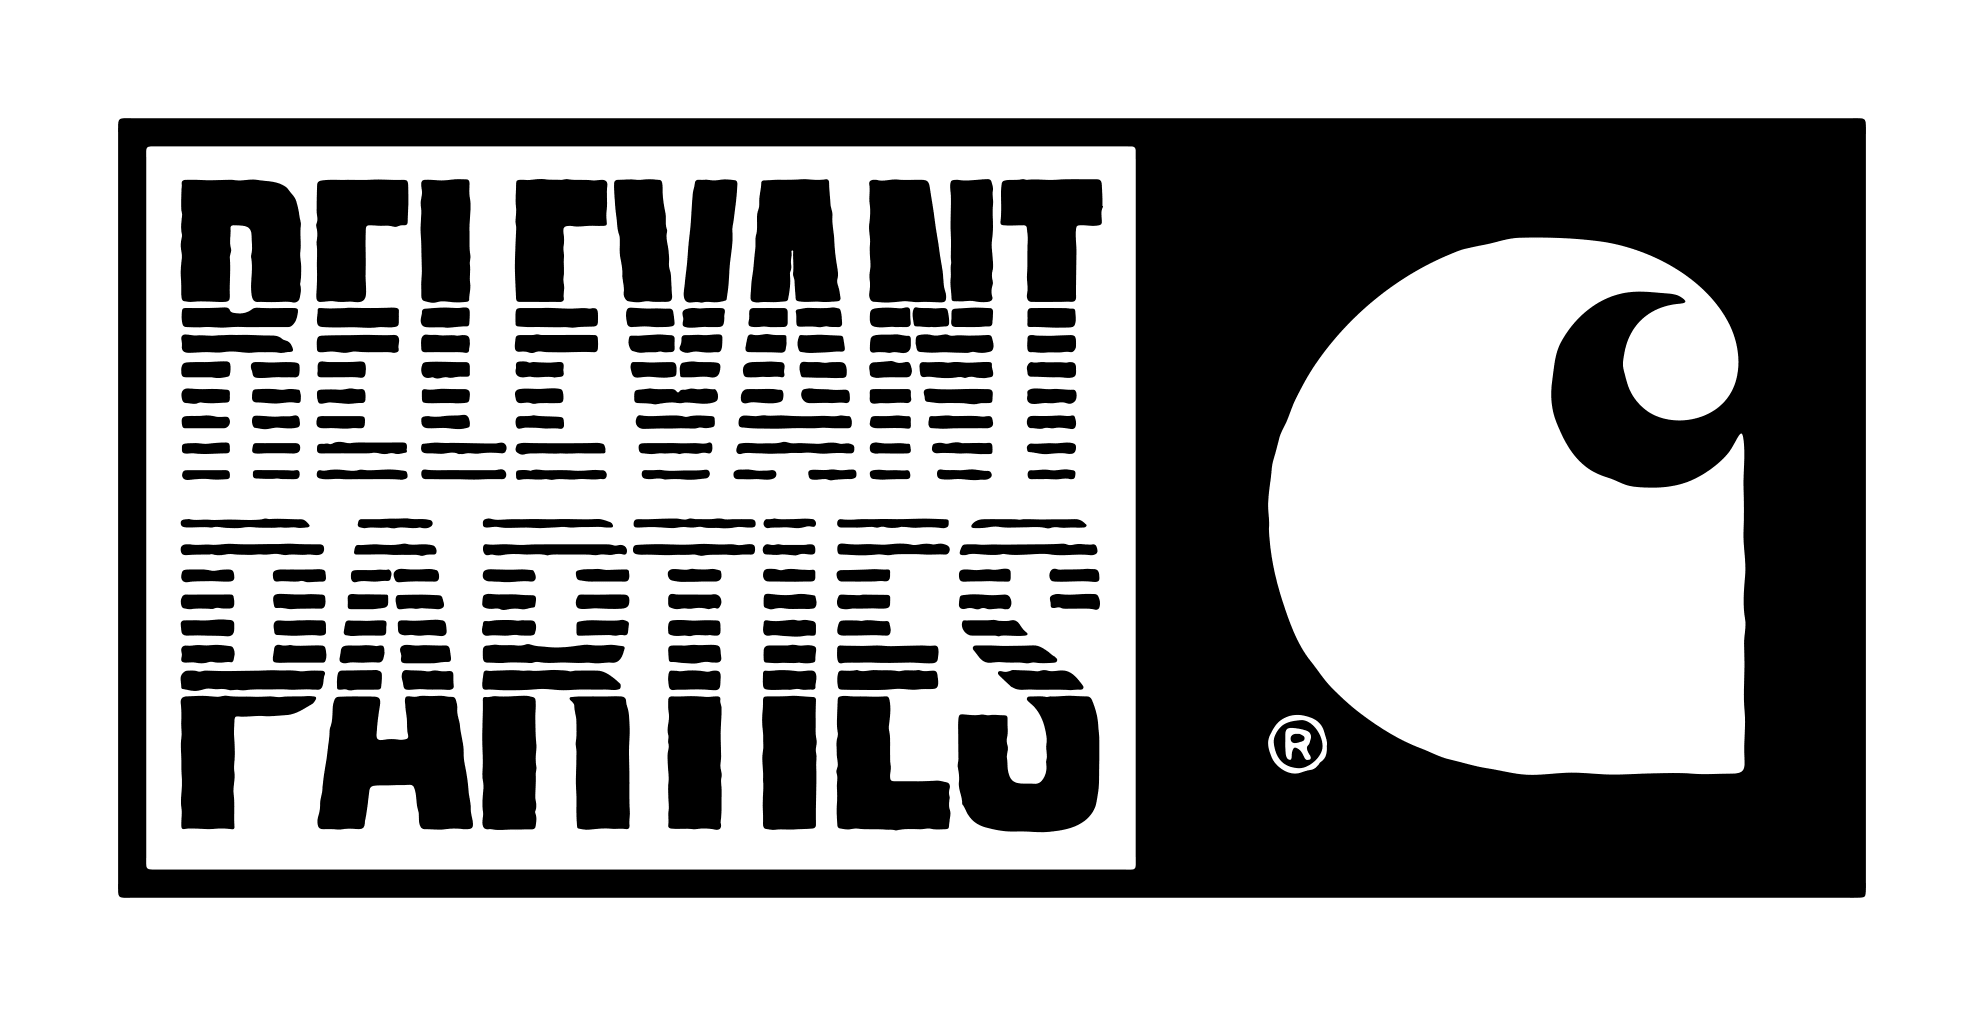 RELEVANT PARTIES By Carhartt WIP - Stones Throw Records